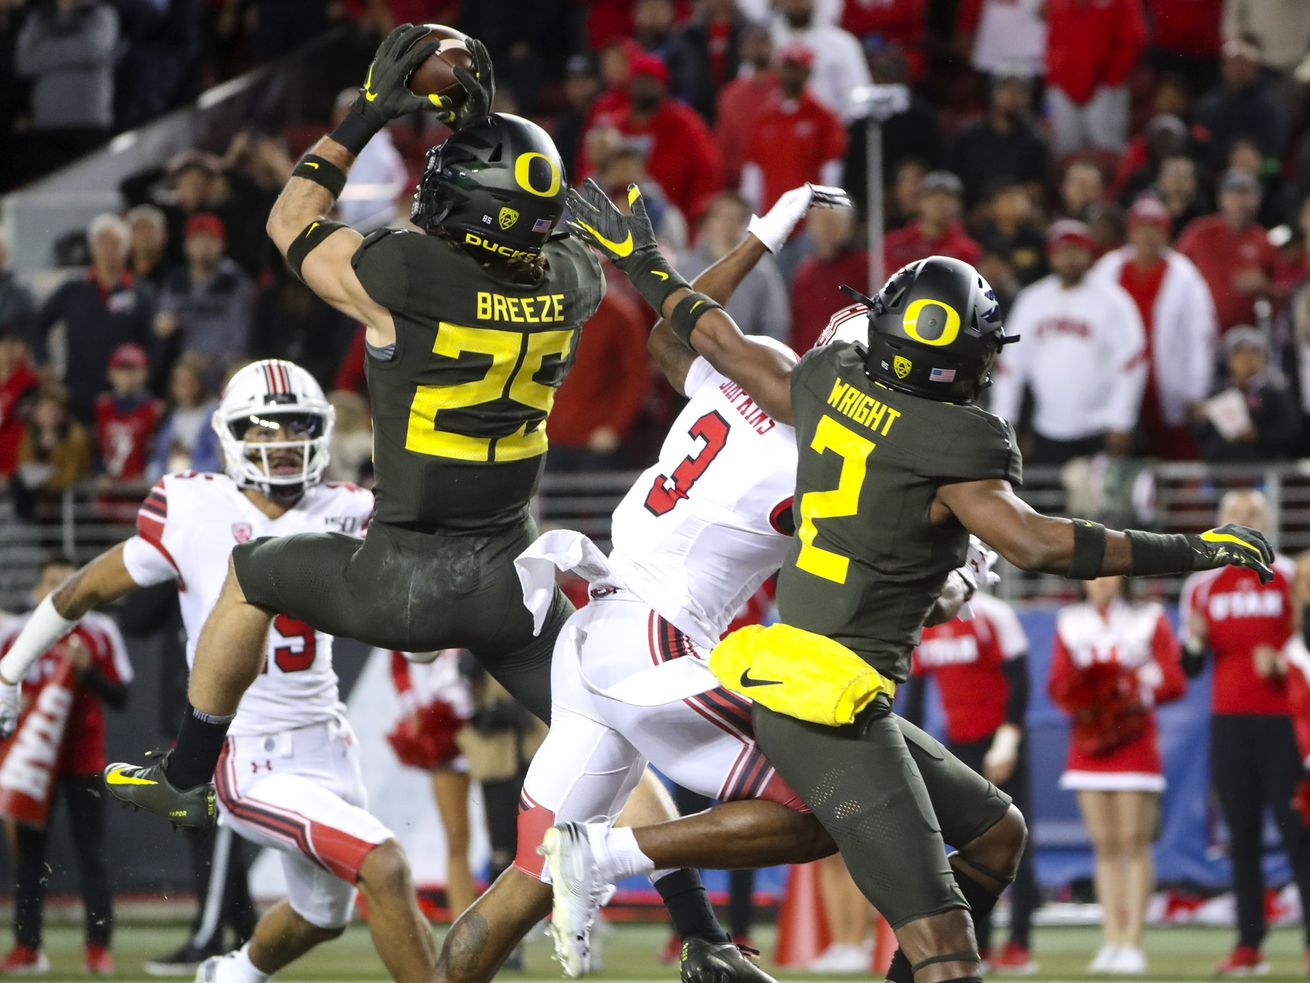 Oregon Ducks safety Brady Breeze (25) intercepts a pass in the end zone intended for Utah Utes wide receiver Demari Simpkins (3) during the Pac-12 Championship game at Levi's Stadium in Santa Clara, Calif., on Friday, Dec. 6, 2019.